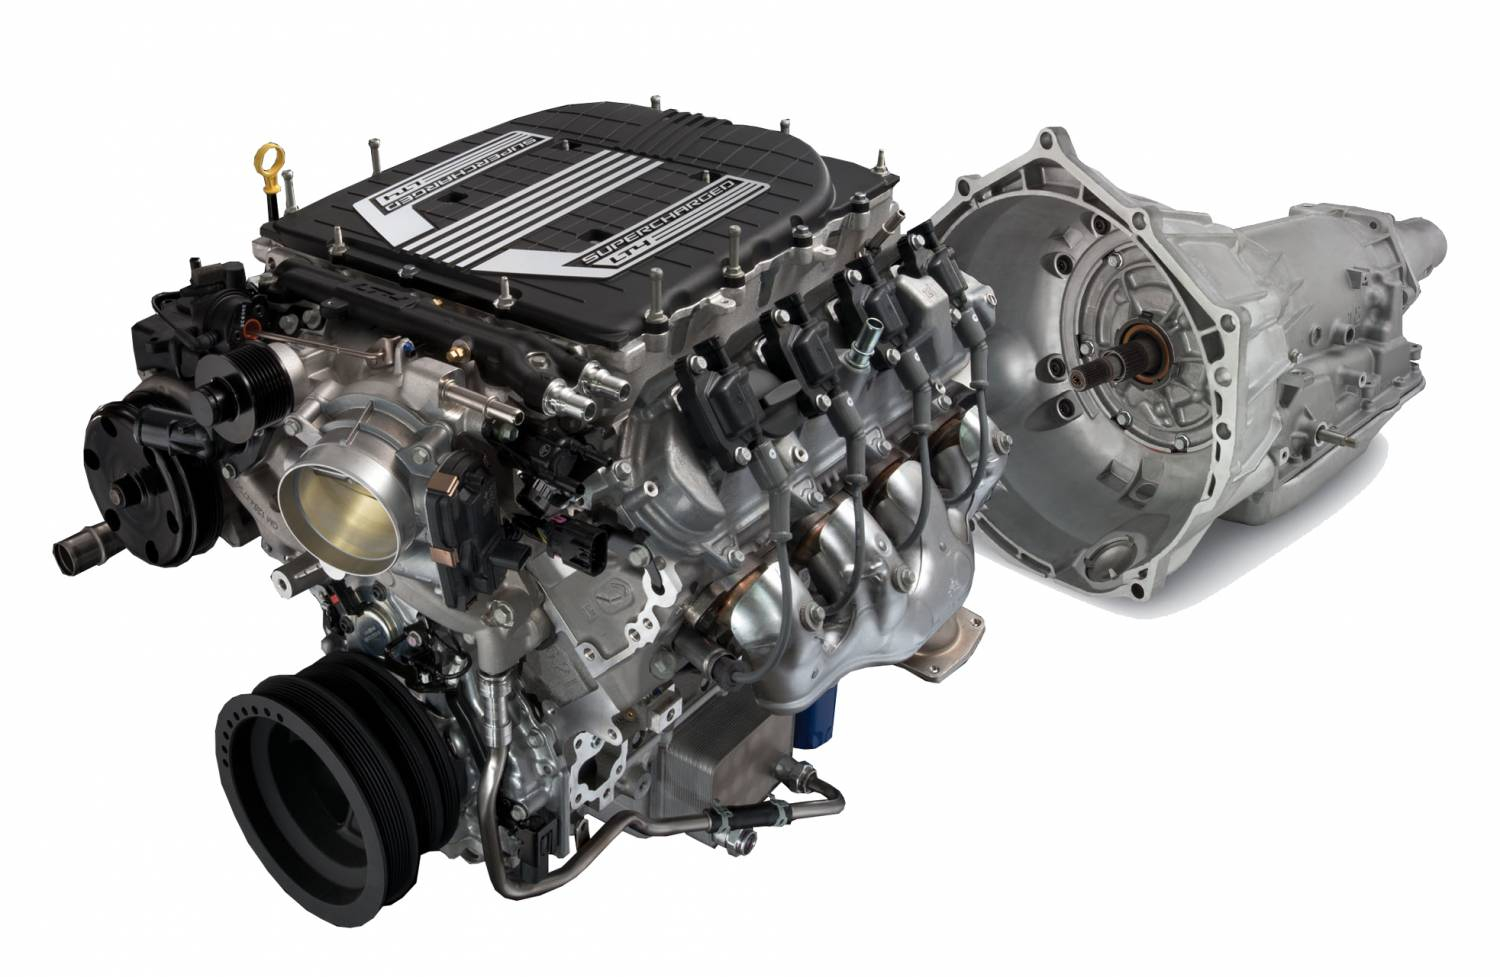 hight resolution of chevrolet performance parts cpslt44l75ew cruise package lt4 650hp wet sump engine w 4l75e